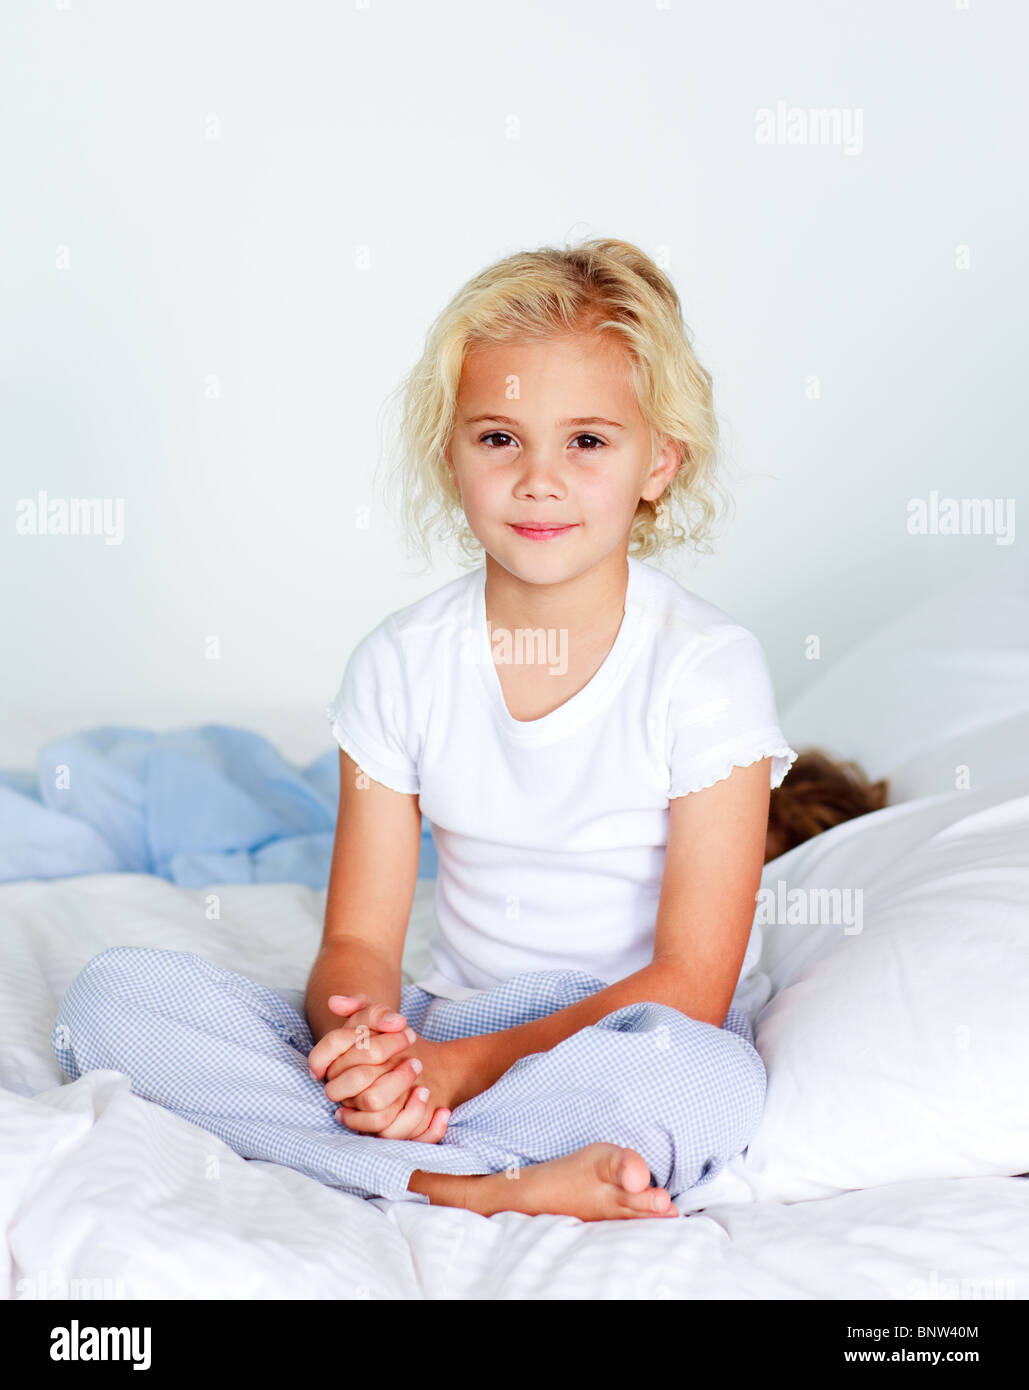 Portrait of a nice girl on a bed - Stock Image